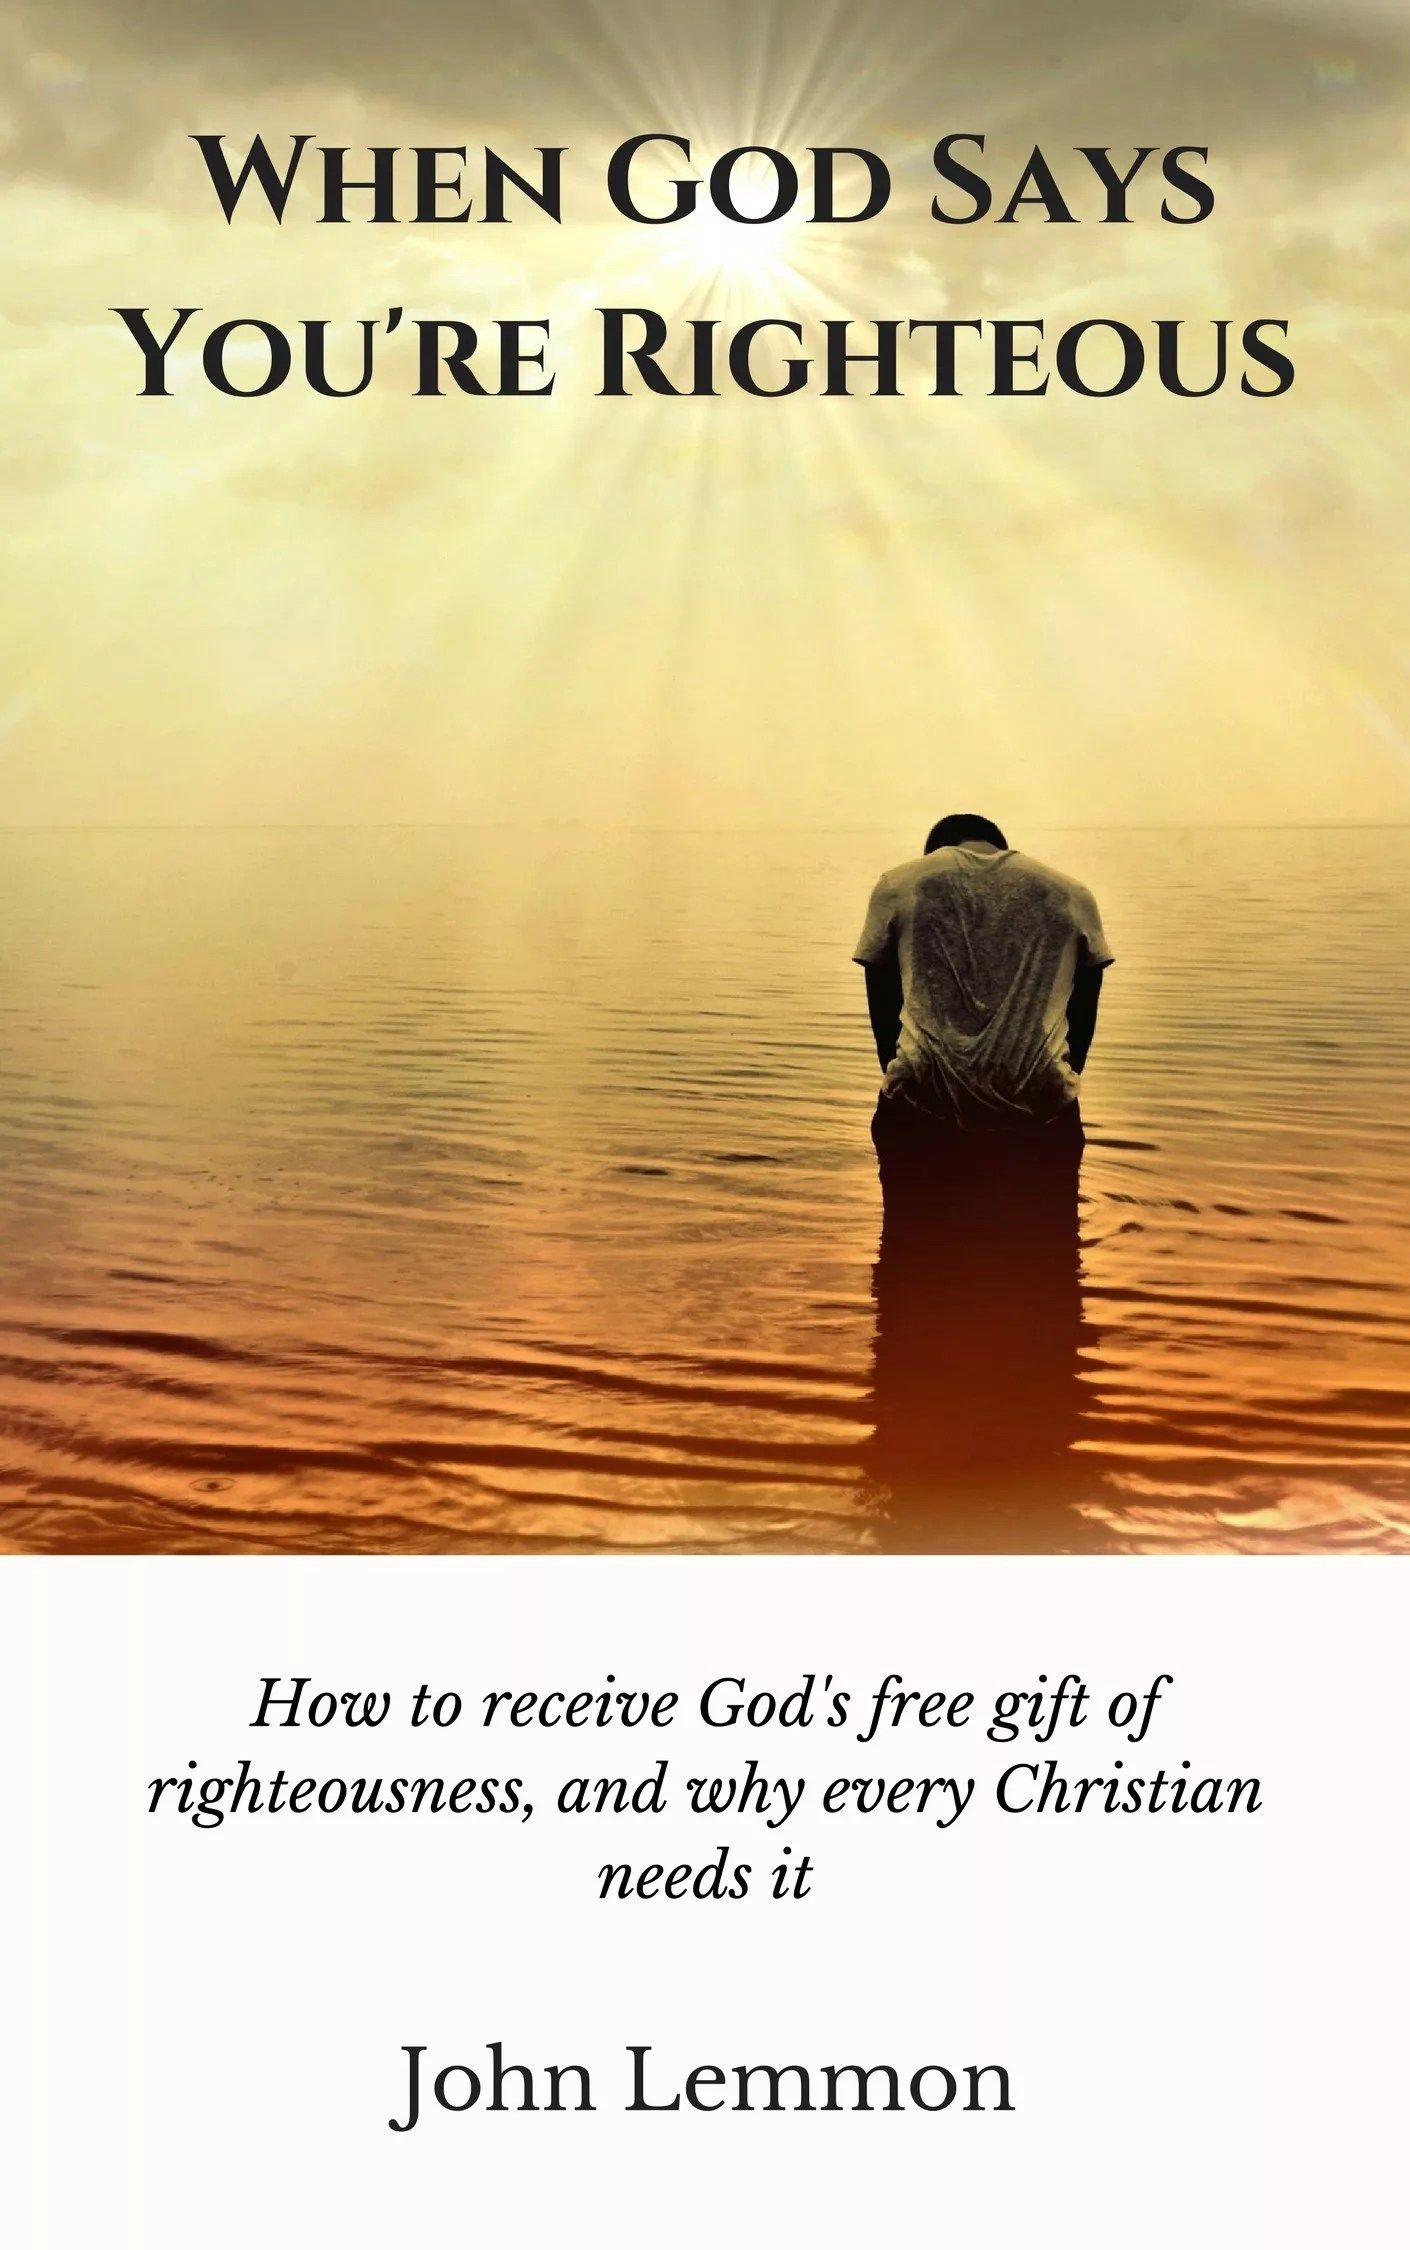 My ebooks free gift from god indeed most christians believe that they are under the power of sin and so the idea of being righteous before god seems impossible fandeluxe Image collections